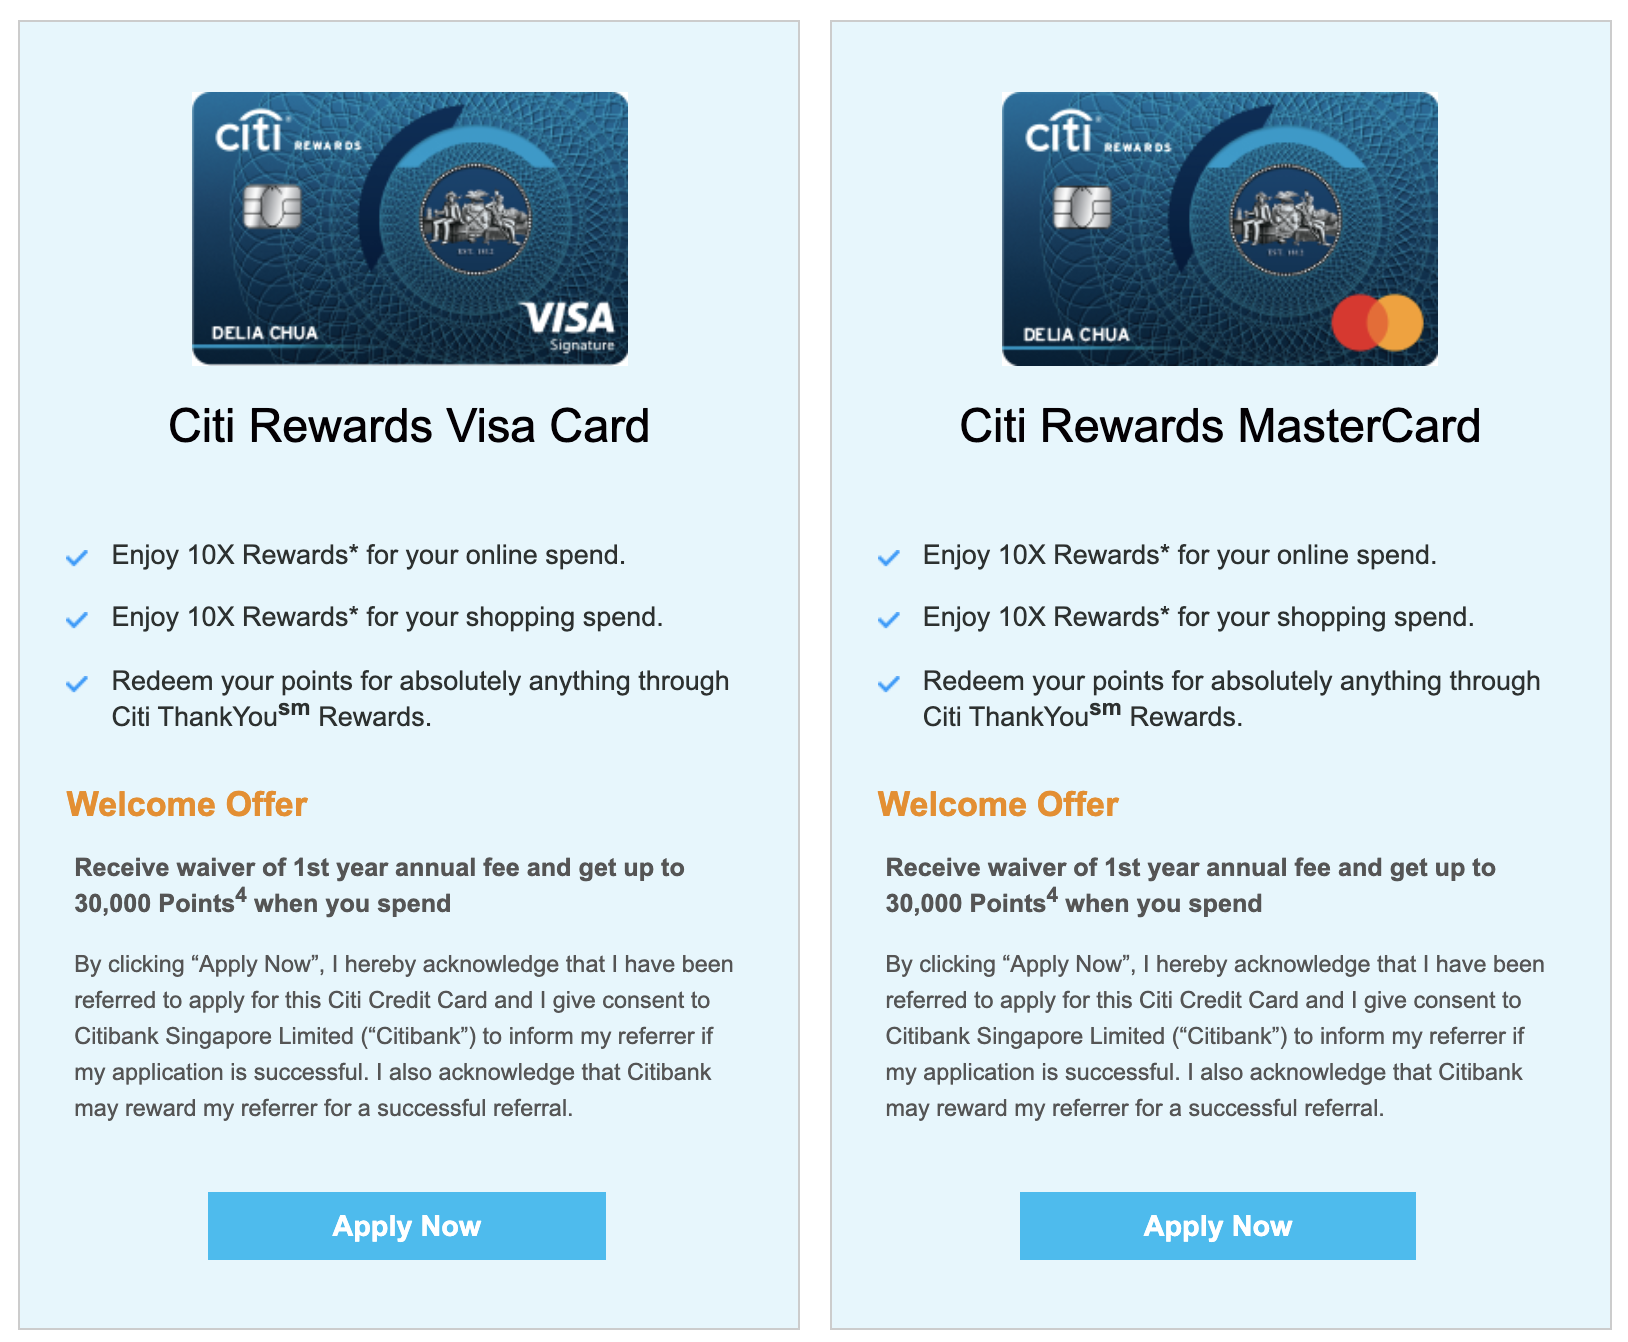 How to Apply for the Citi Rewards Mastercard (And Why I Think You